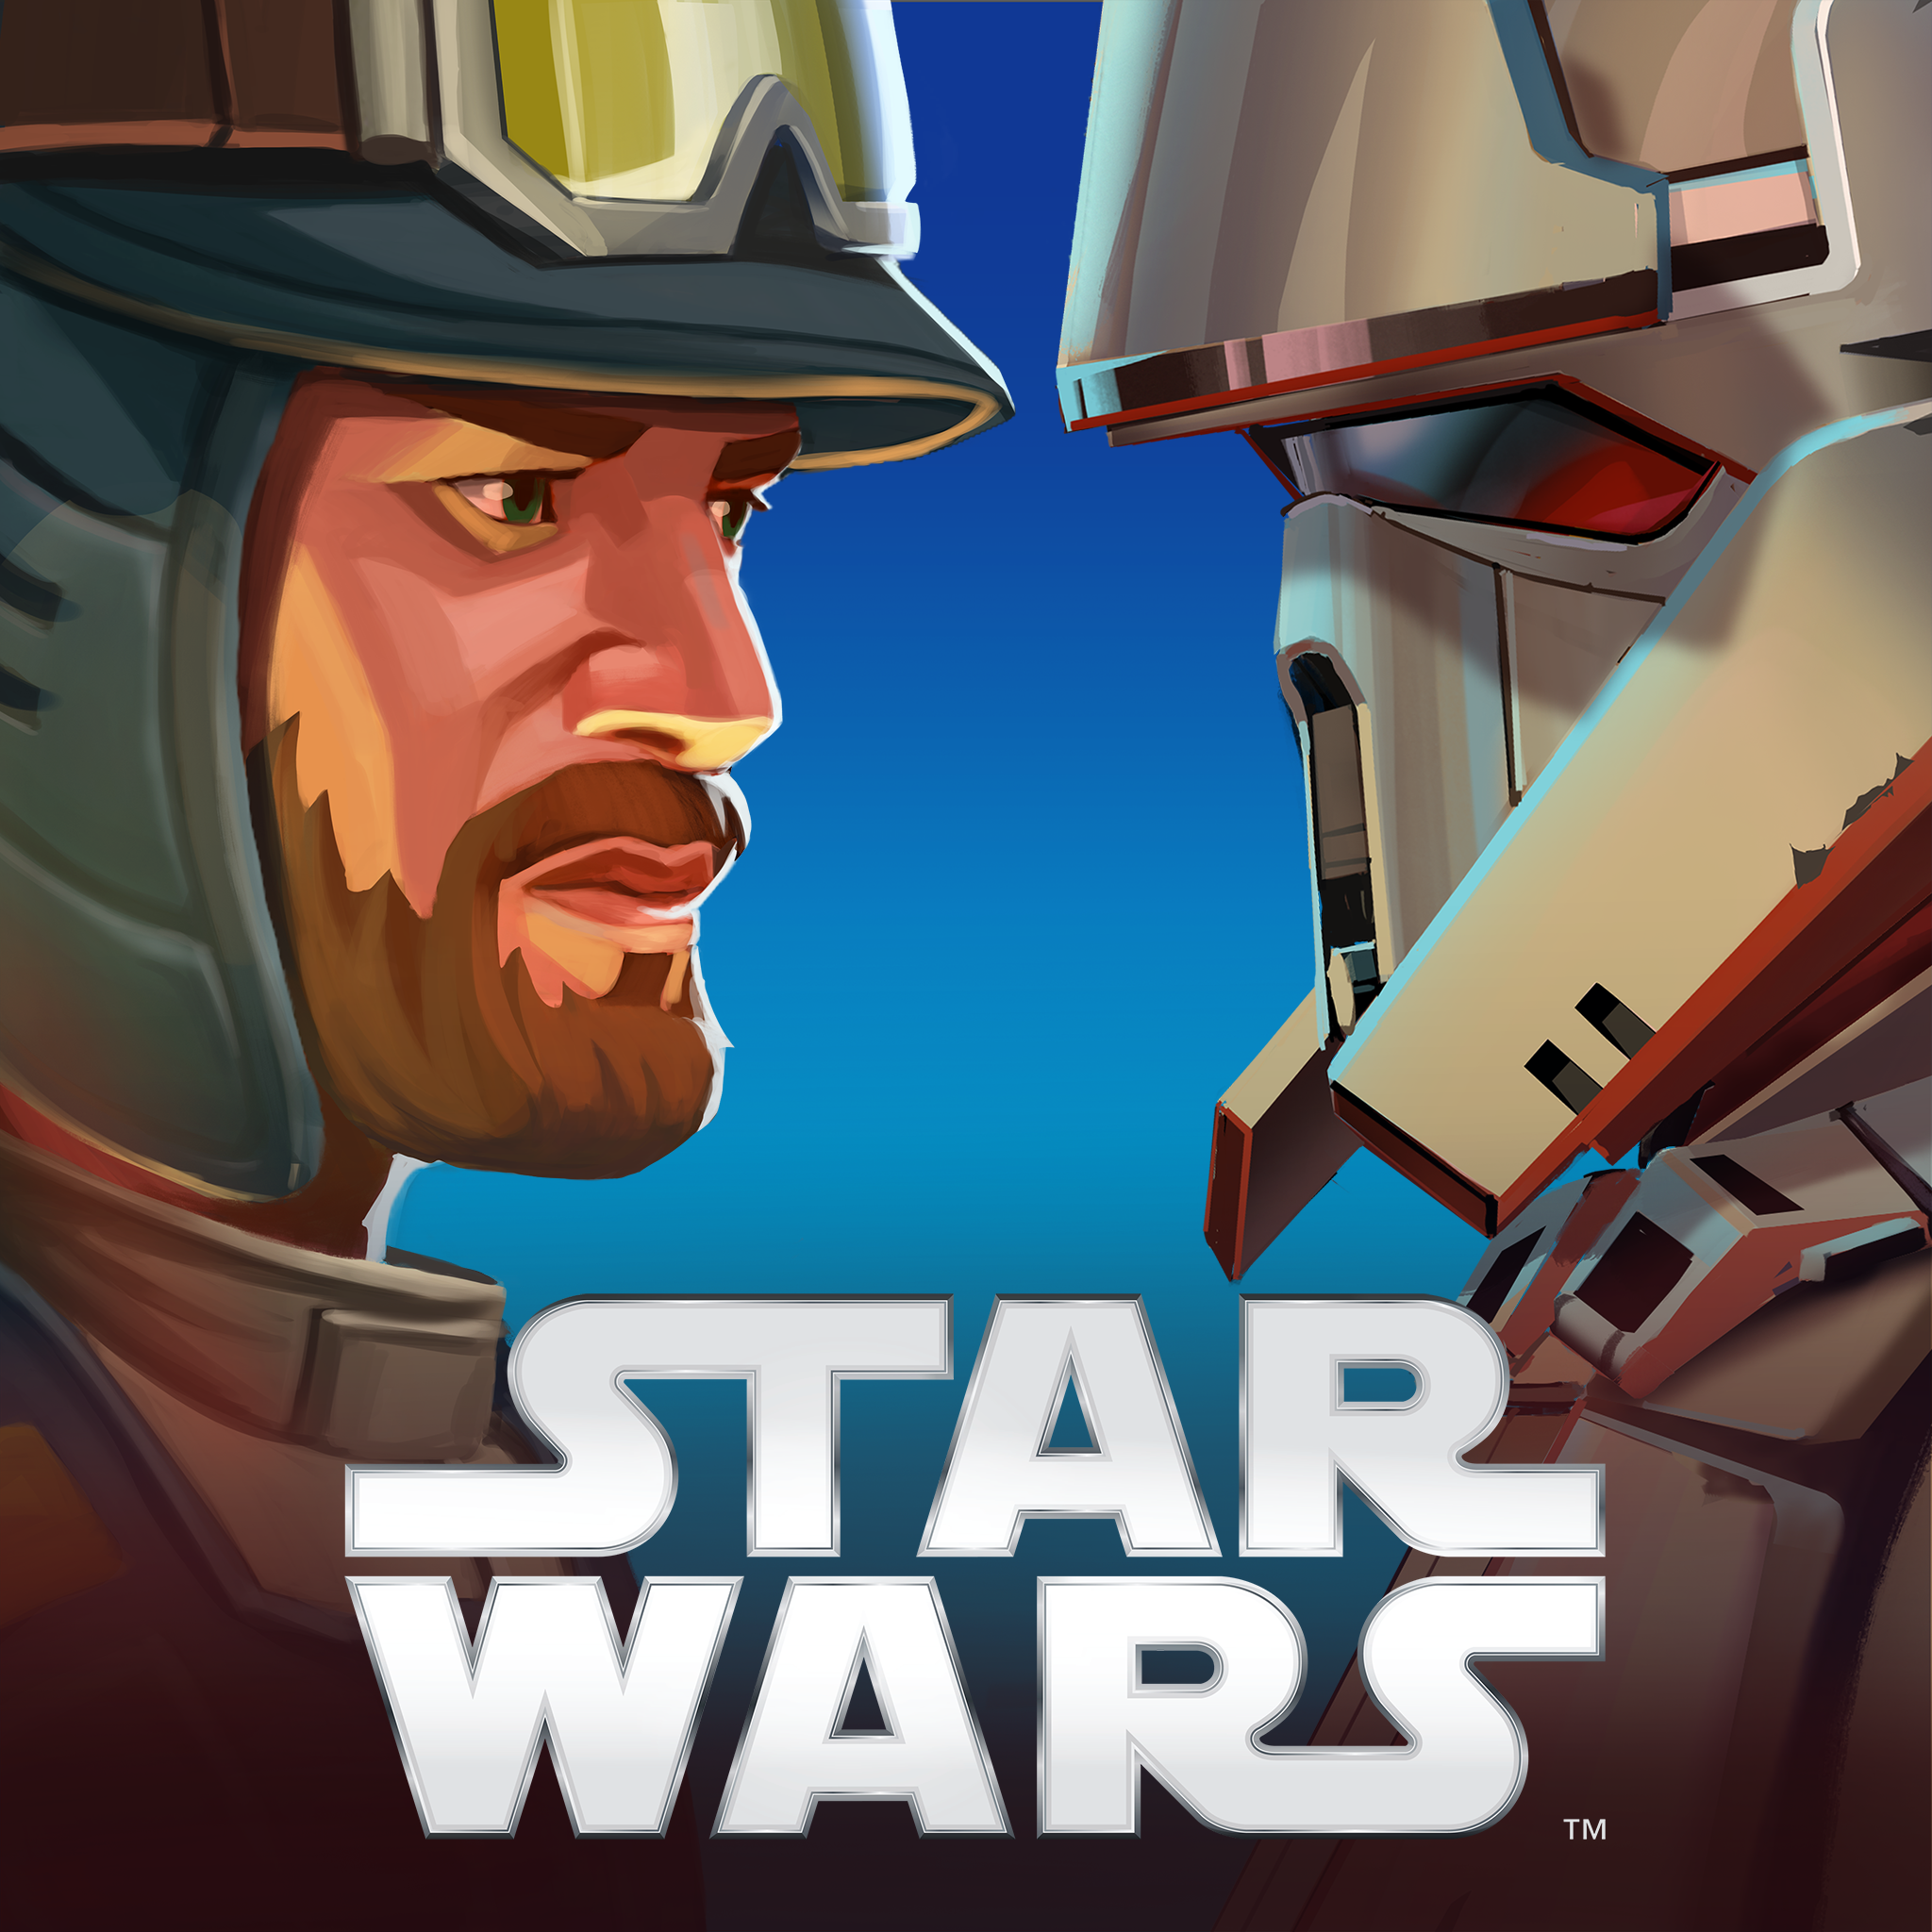 Zynga is teaming up with Disney to create two Star Wars mobile games